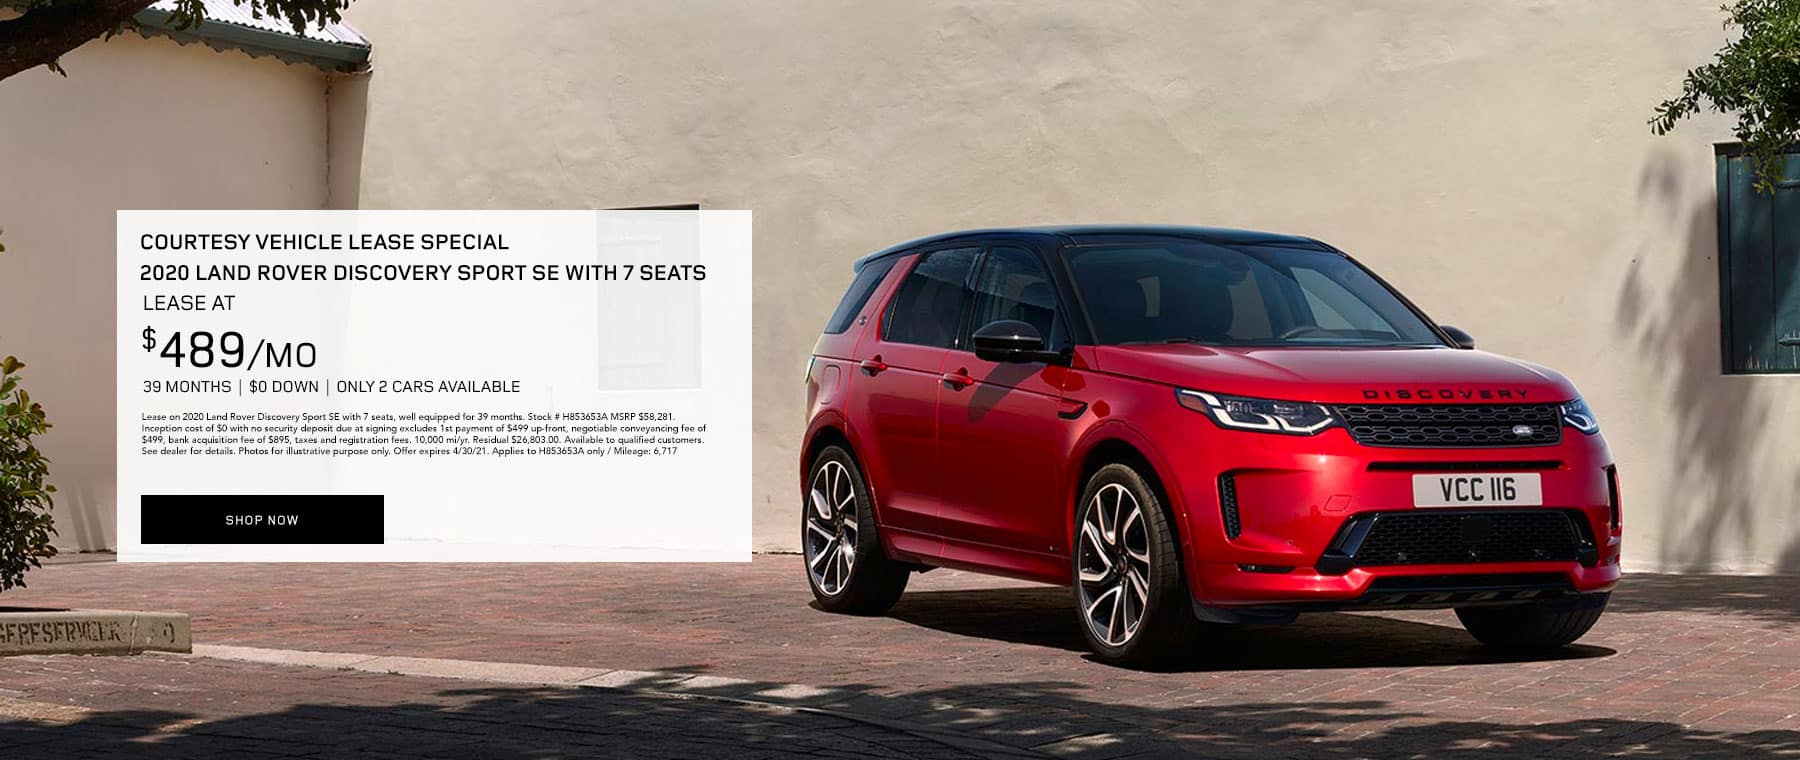 COURTESY VEHICLE LEASE SPECIAL 2020 Land Rover Discovery Sport SE with 7 seats – only 1 car available, LEASE AT $489 PER MONTH FOR 39 MONTHS $0 DOWN